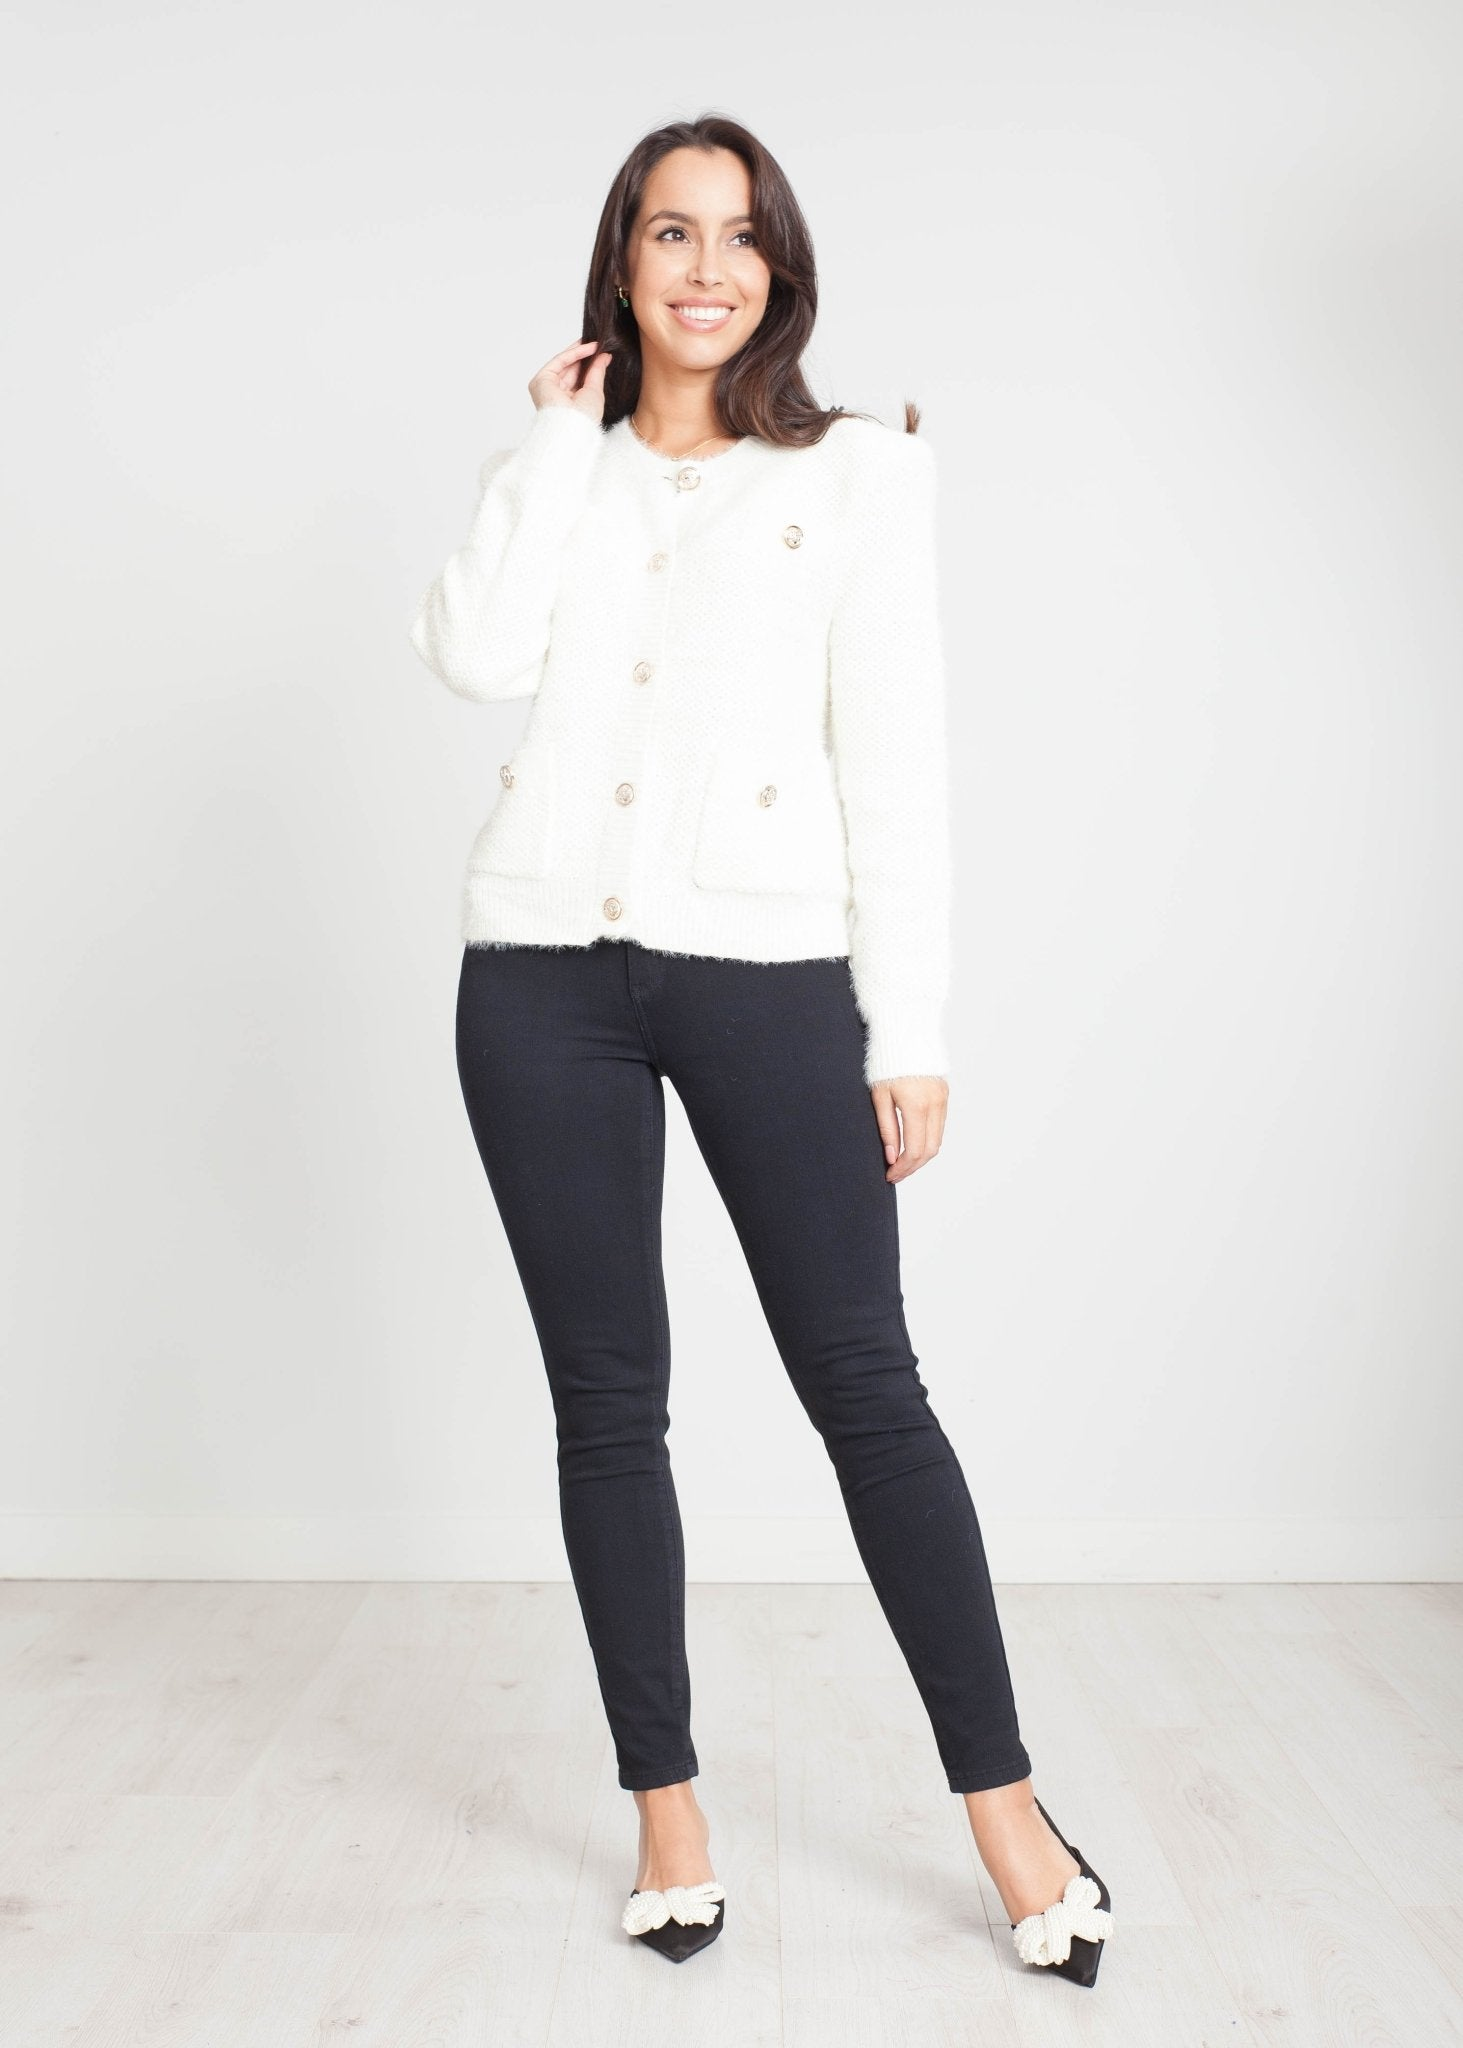 Emilia Shoulder Pad Cardigan in Cream - The Walk in Wardrobe